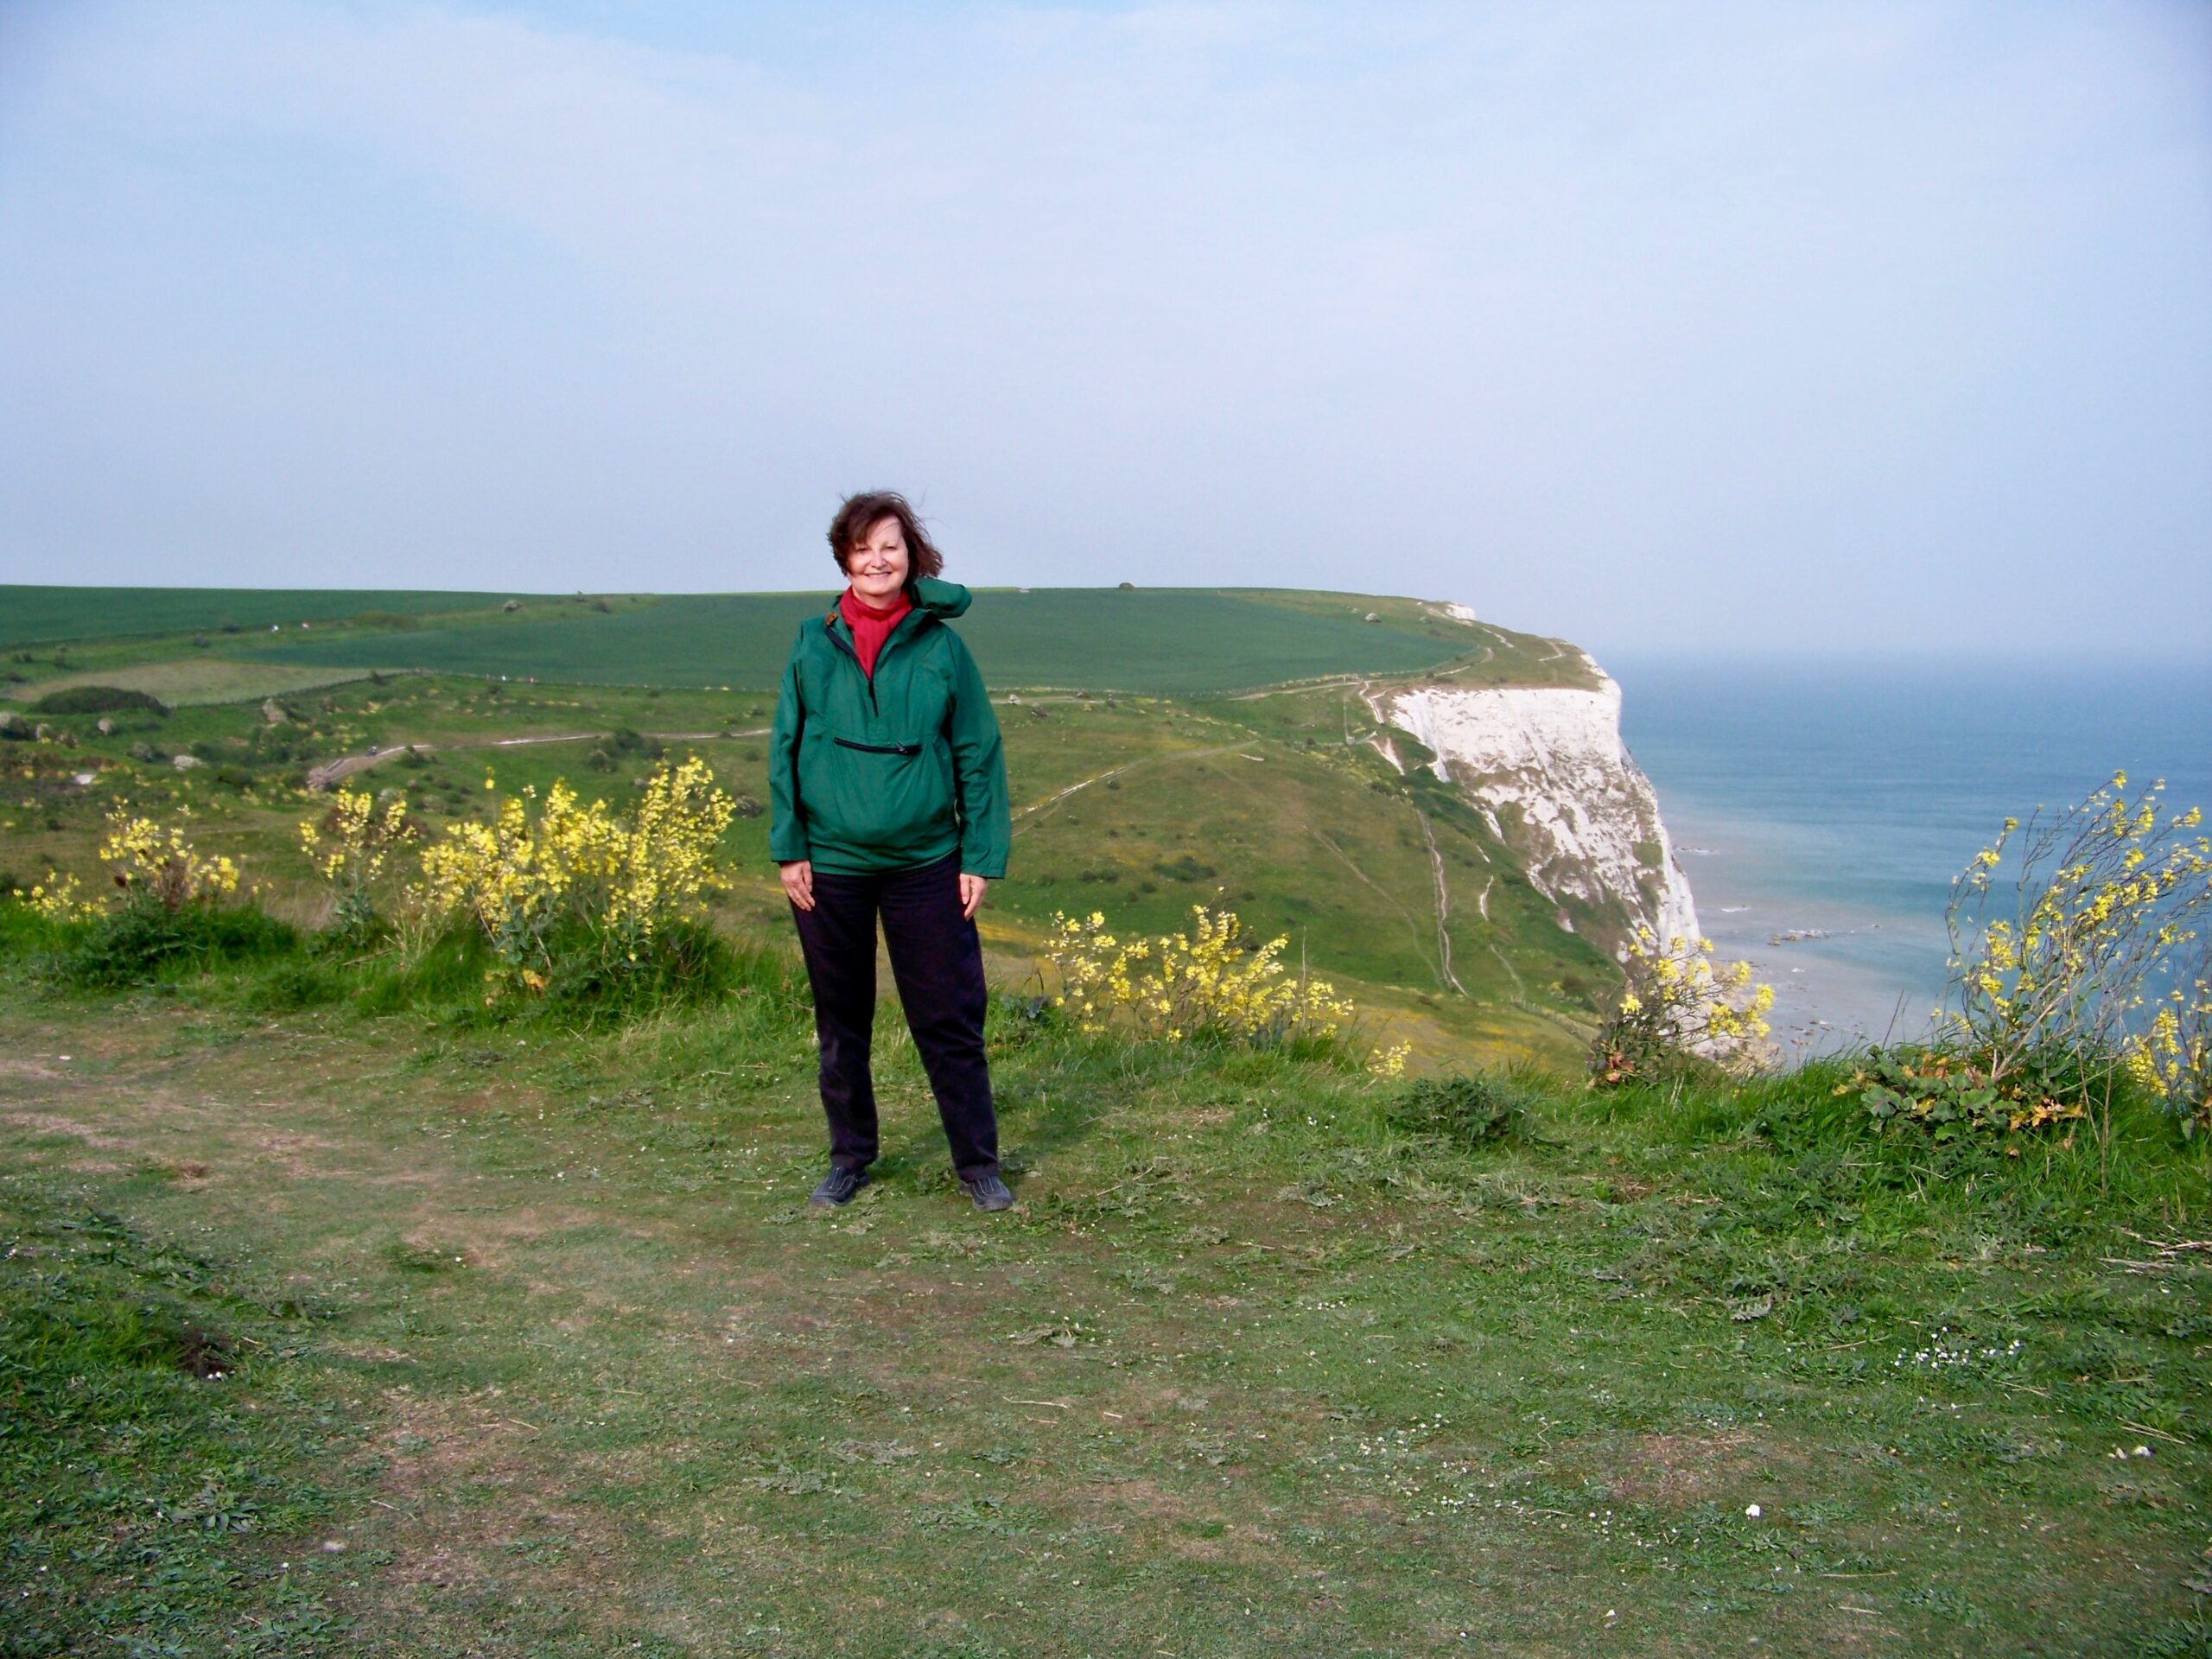 Visiting the White Cliffs of Dover.